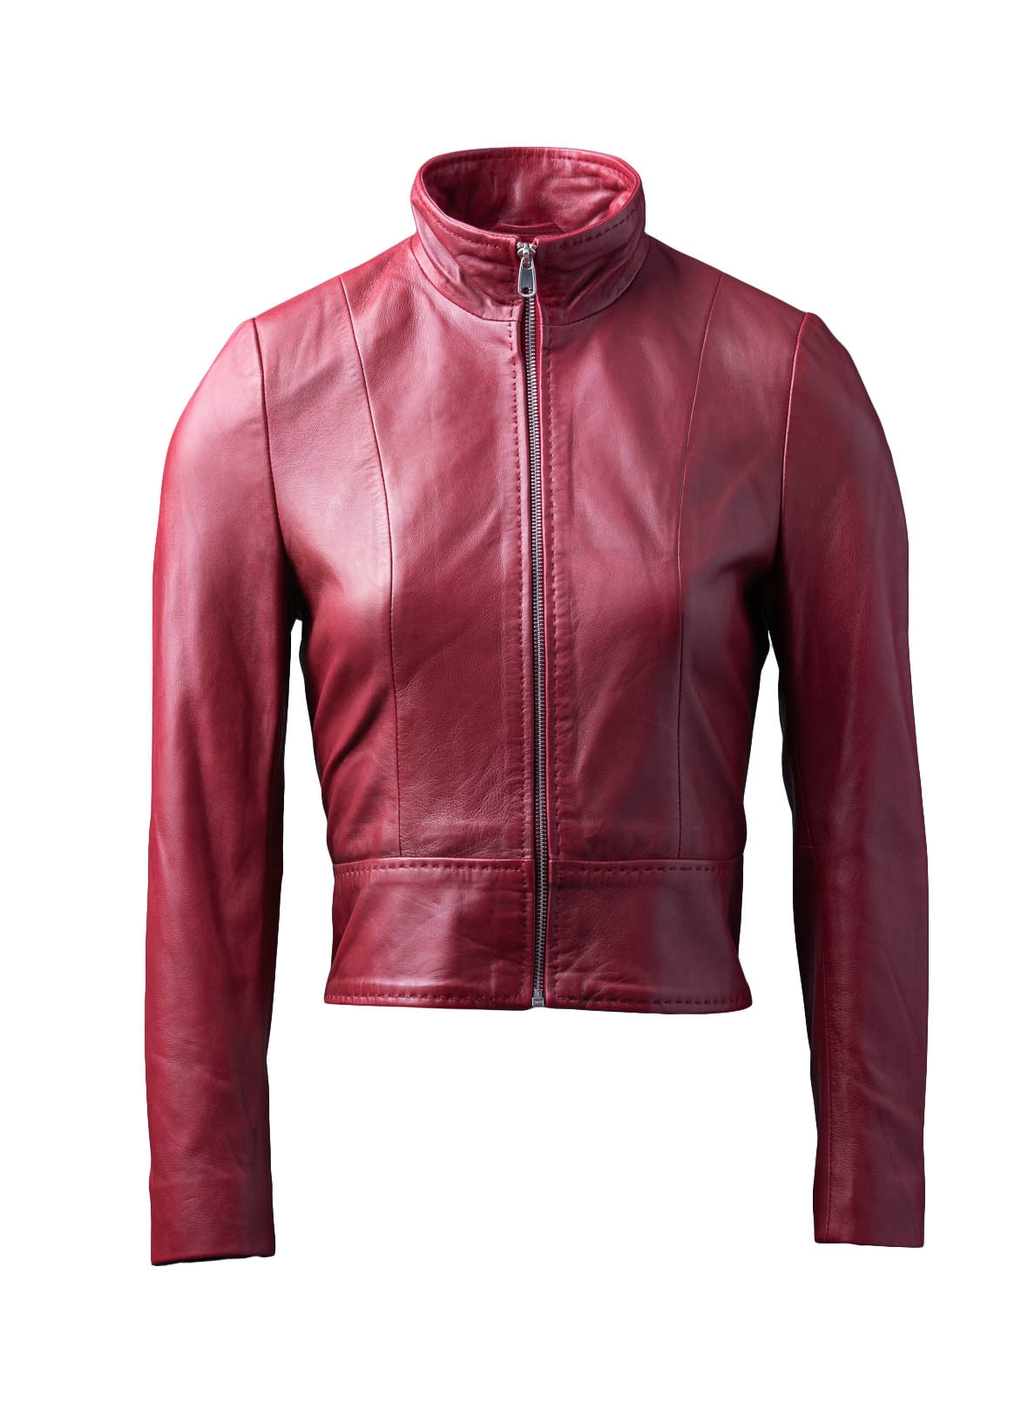 Lin Leather Jacket in Red